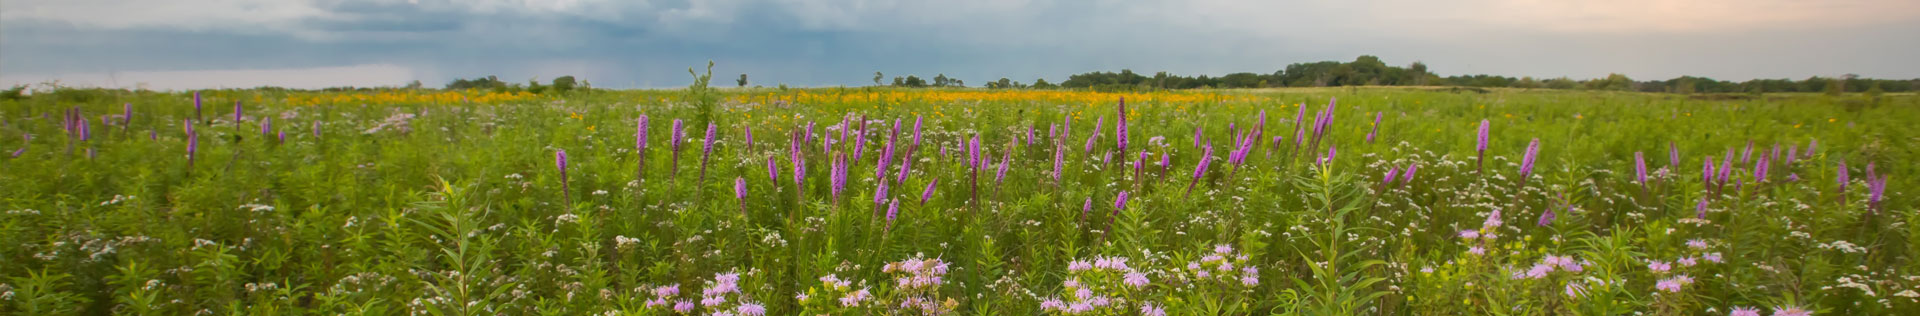 A photo of blooming wildflowers in a field